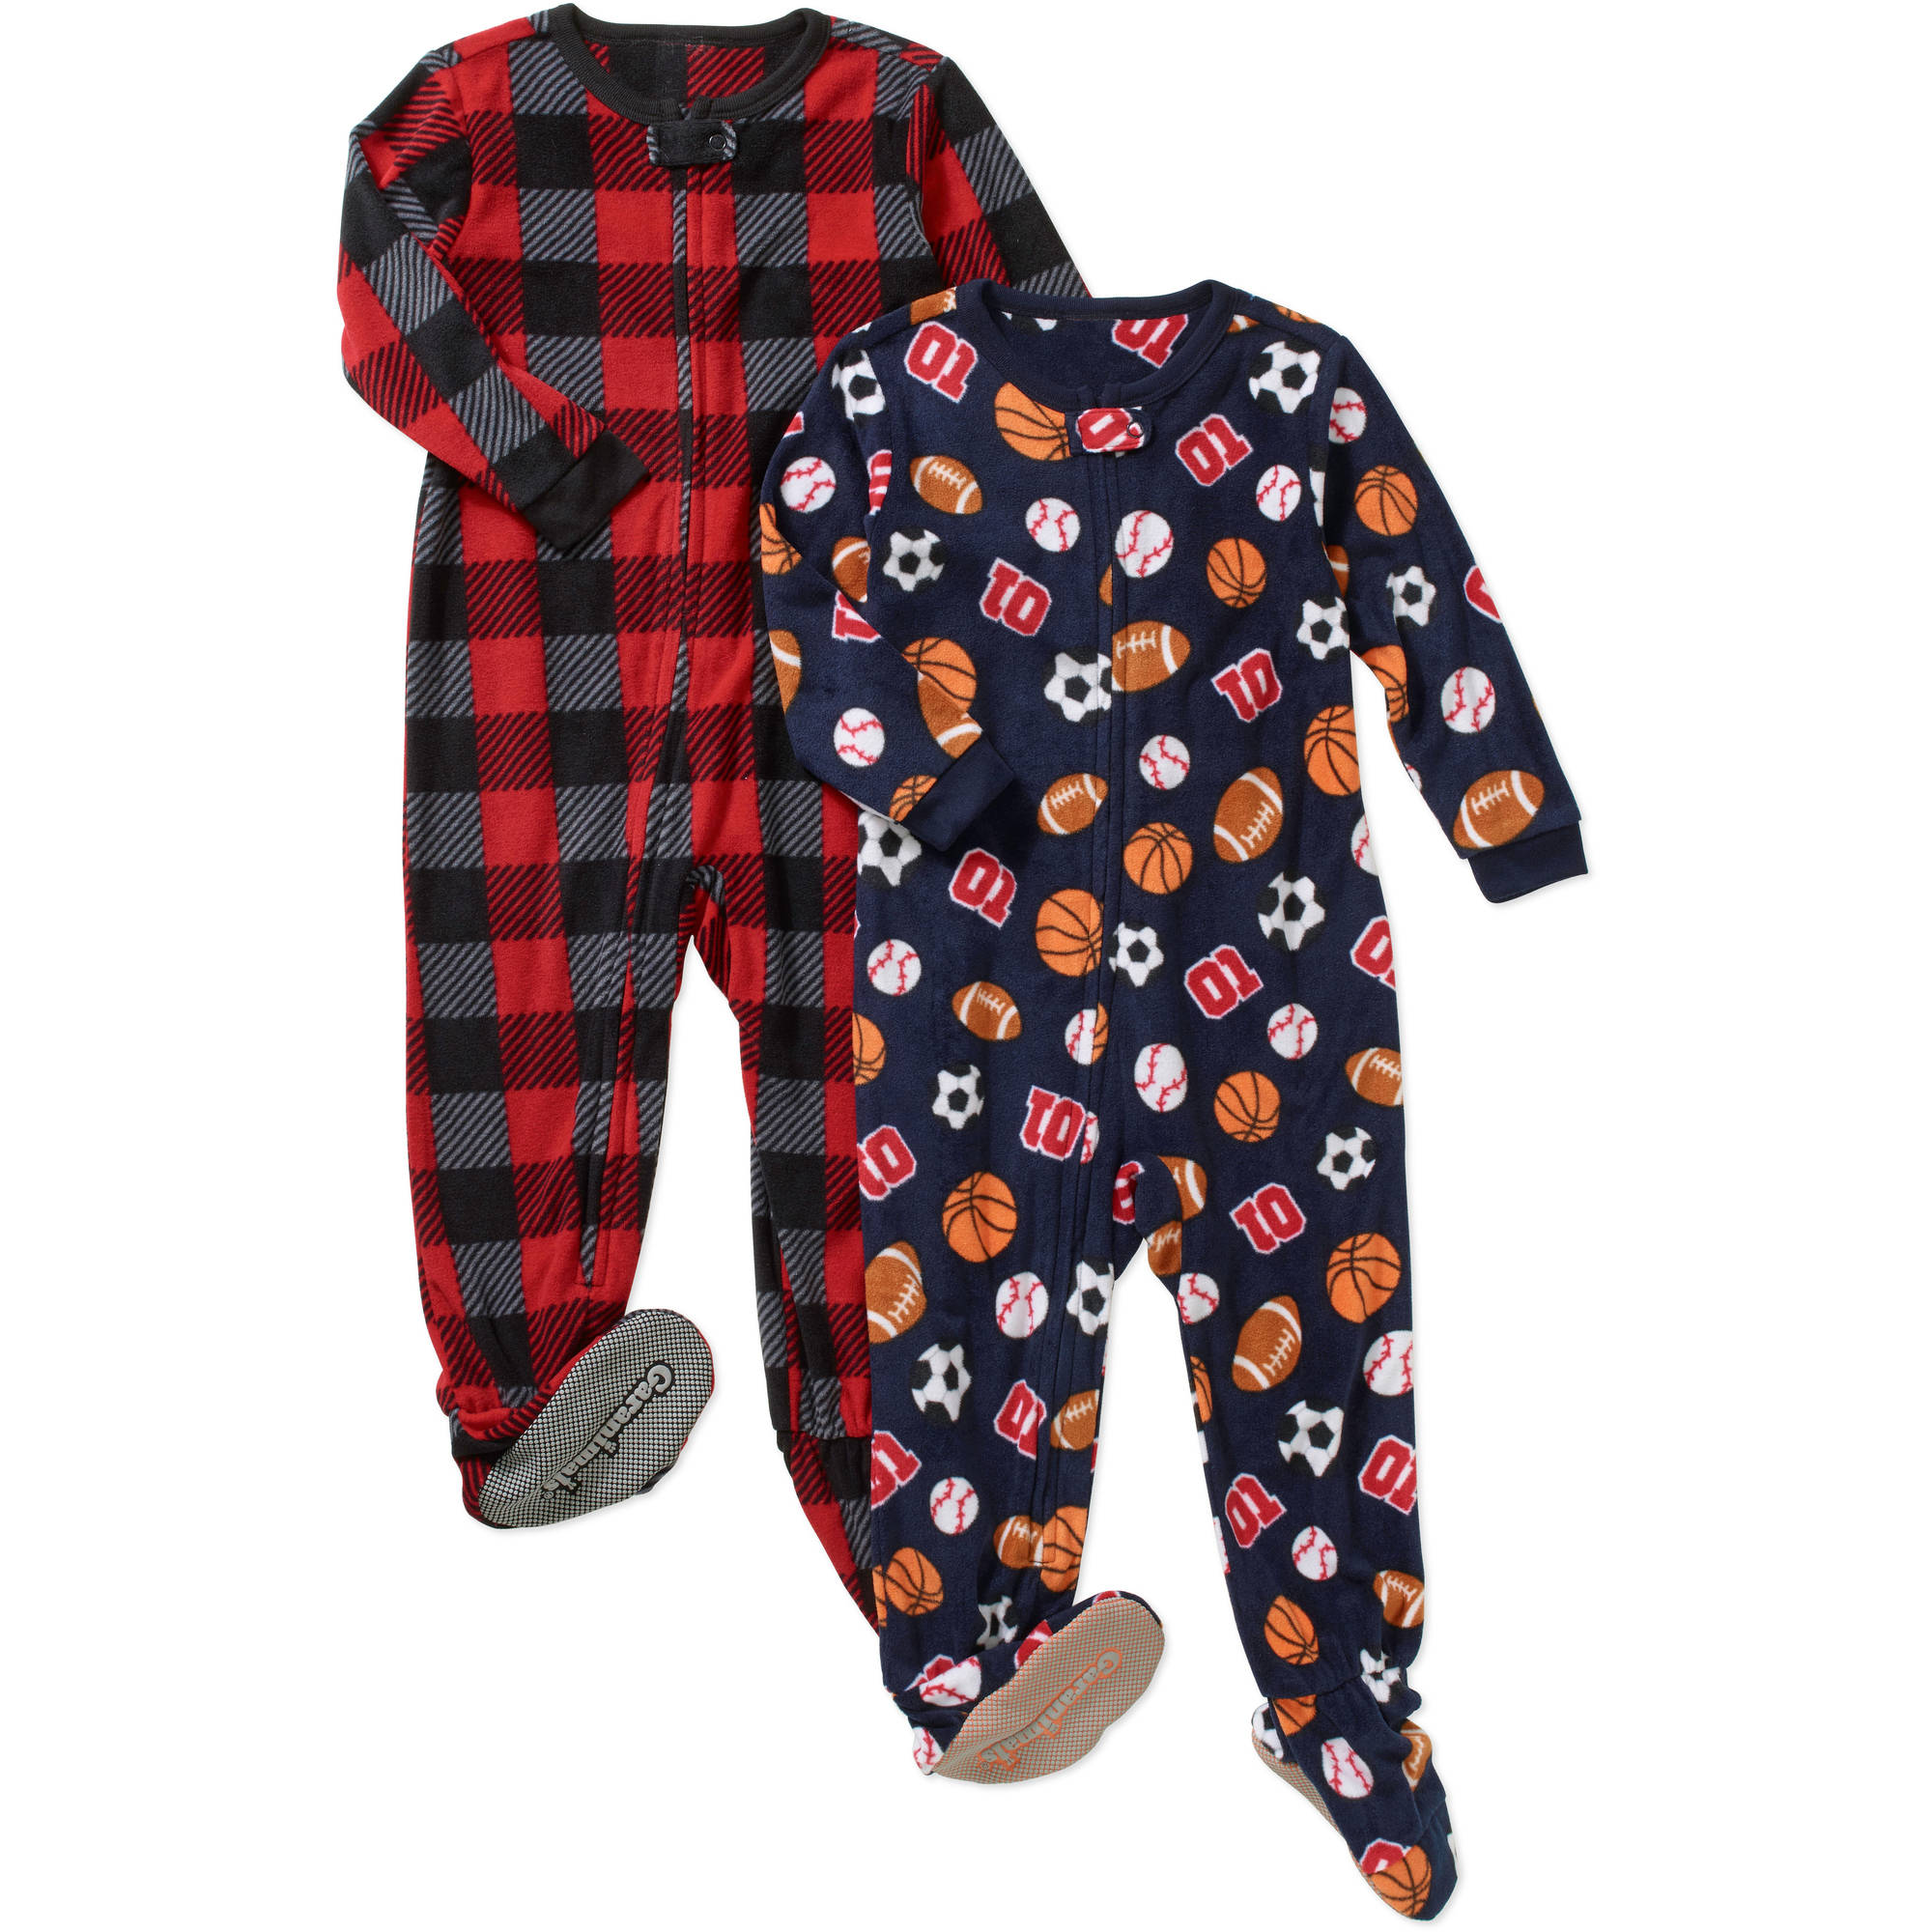 Garanimals Baby Toddler Boy Microfleece Blanket Sleepers, 2-Pack